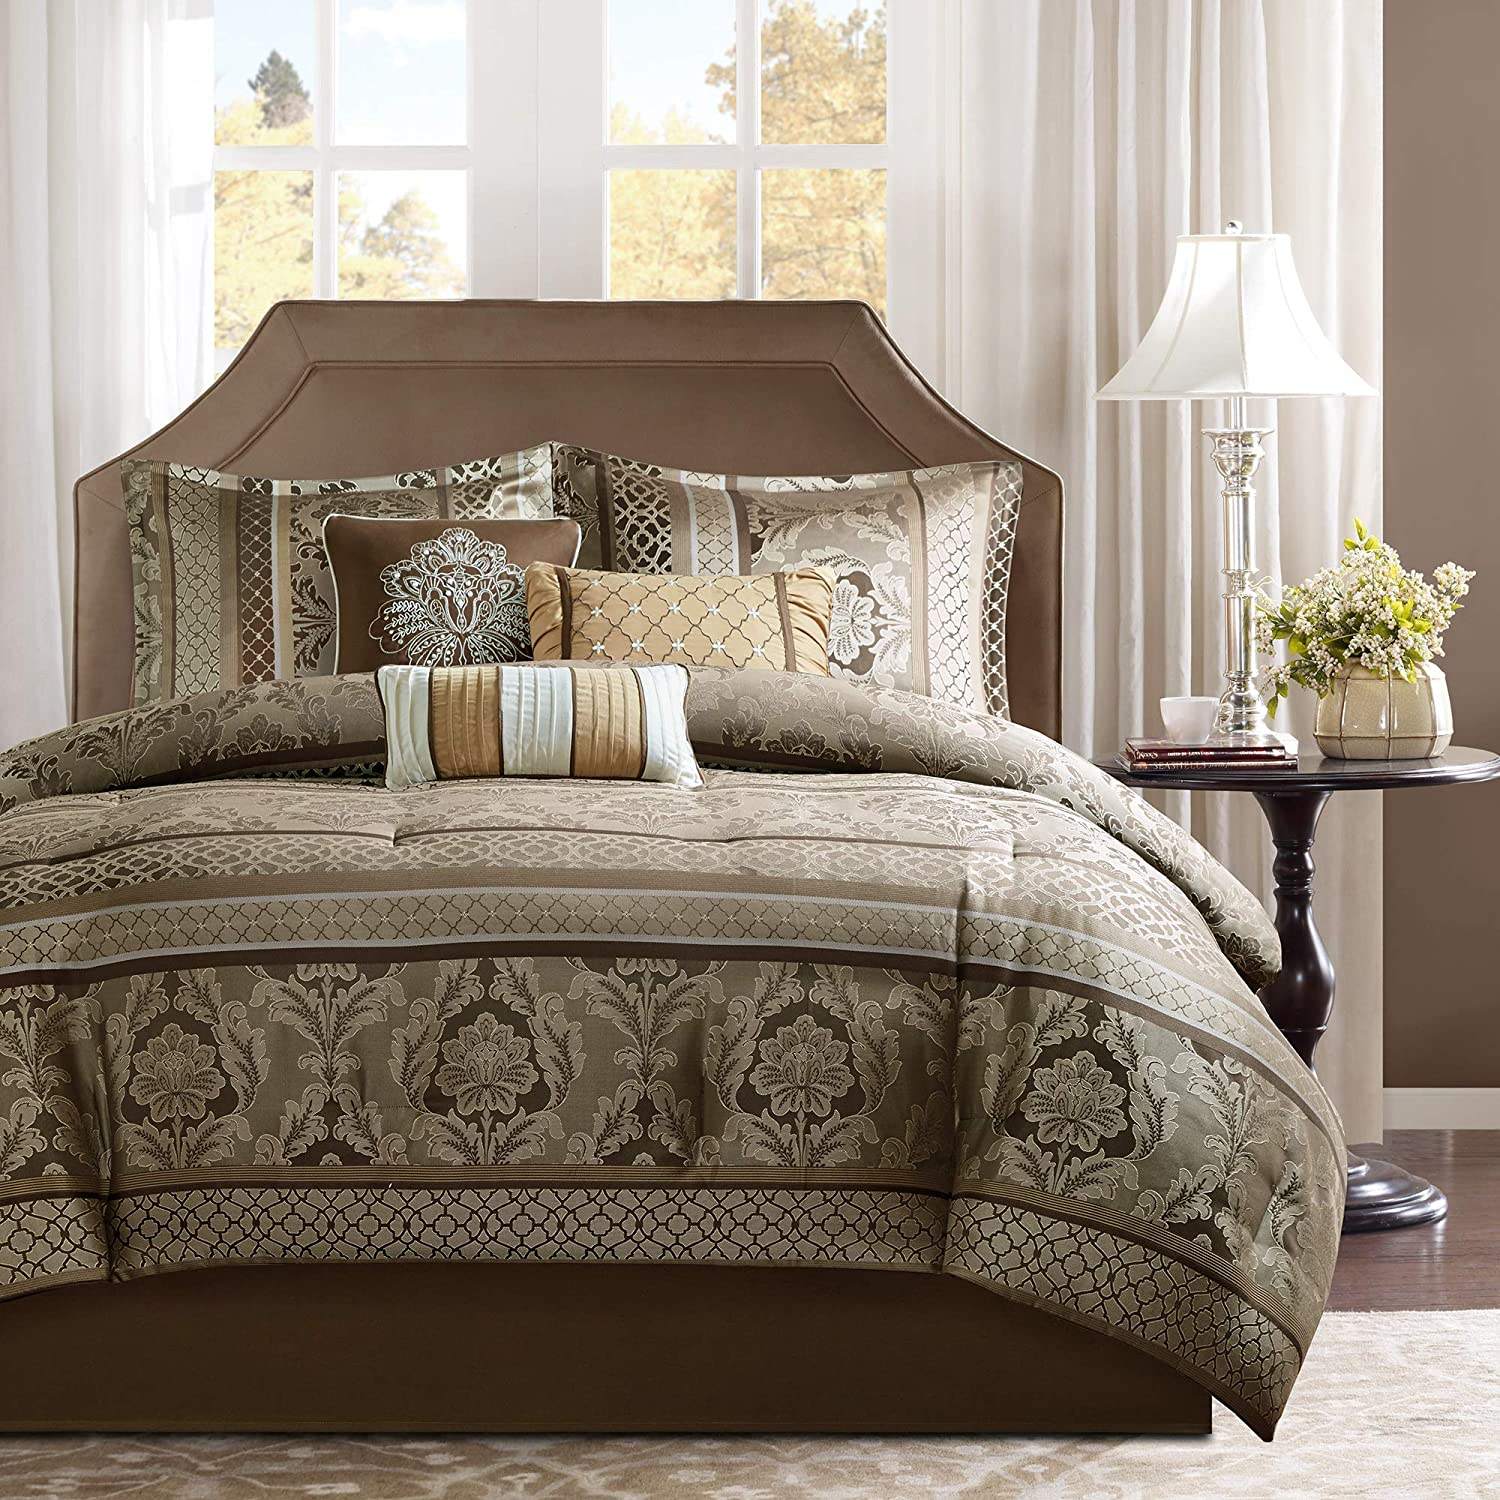 """Madison Park Cozy Comforter Set-Luxurious Jaquard Traditional Damask Design All Season Down Alternative Bedding with Matching Shams, Decorative Pillow, Queen(90""""x90""""), Brown/Gold 7 Piece"""